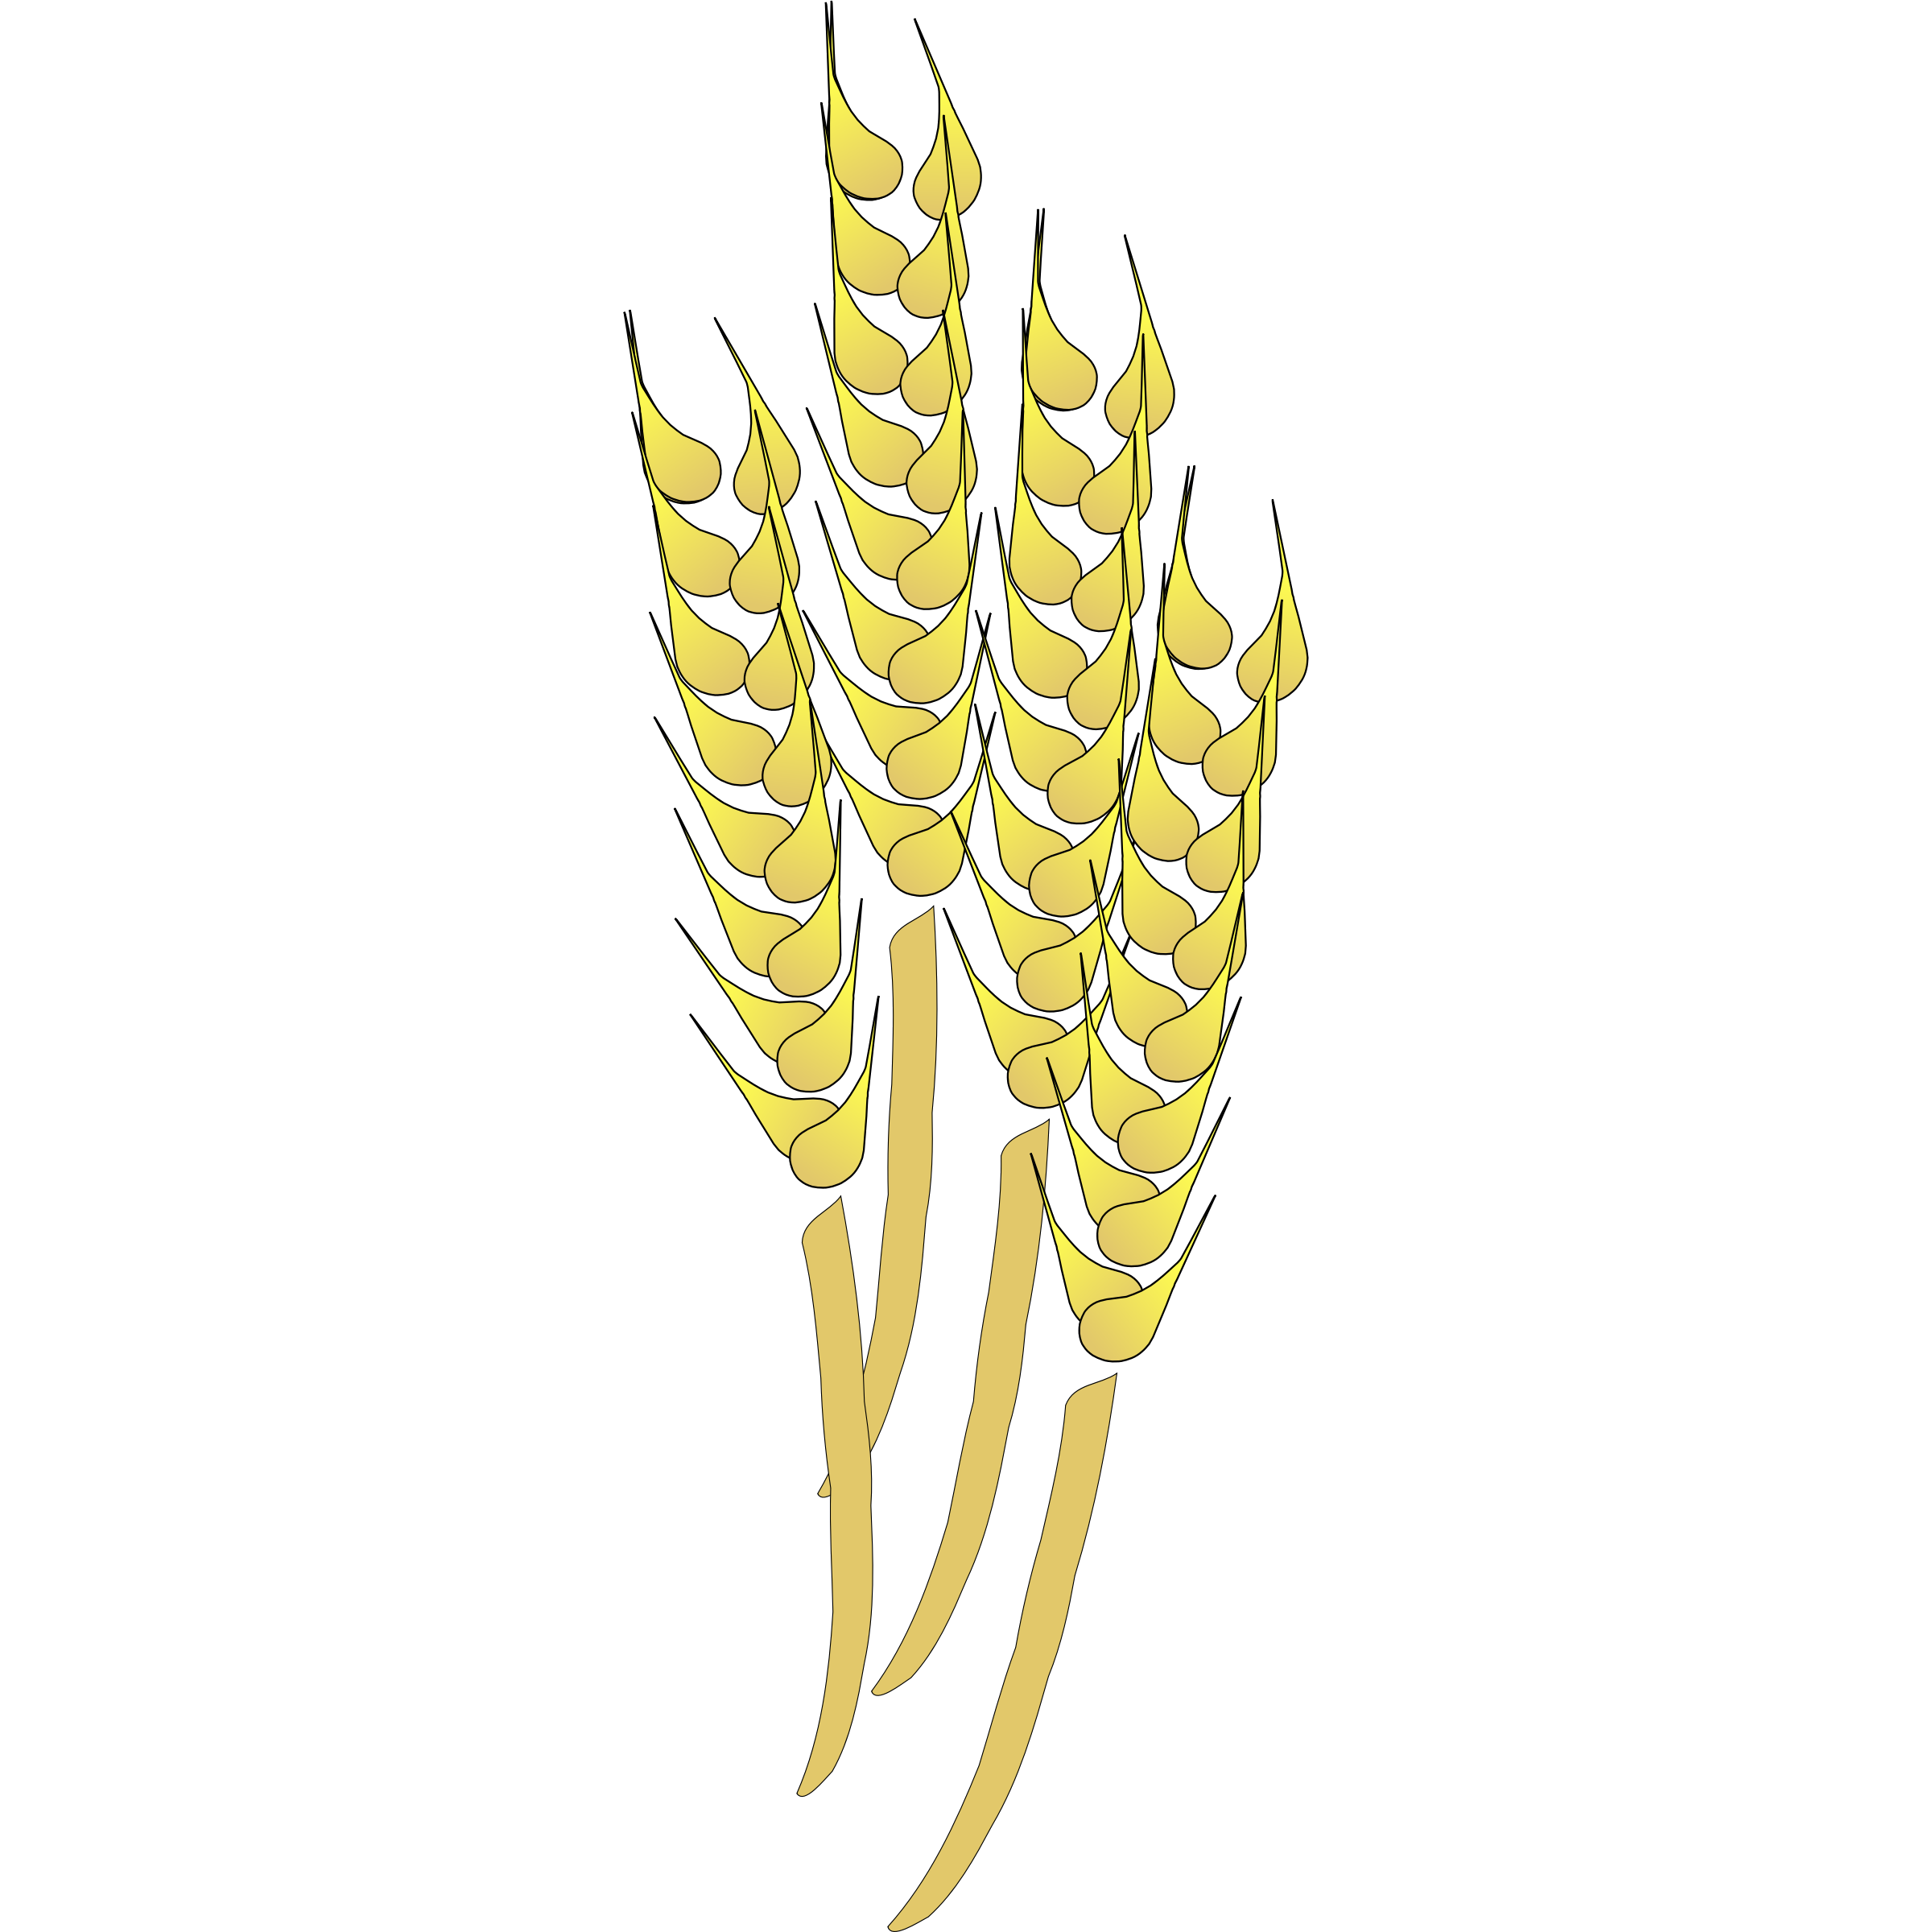 Cliparts for free and. Wheat clipart hay